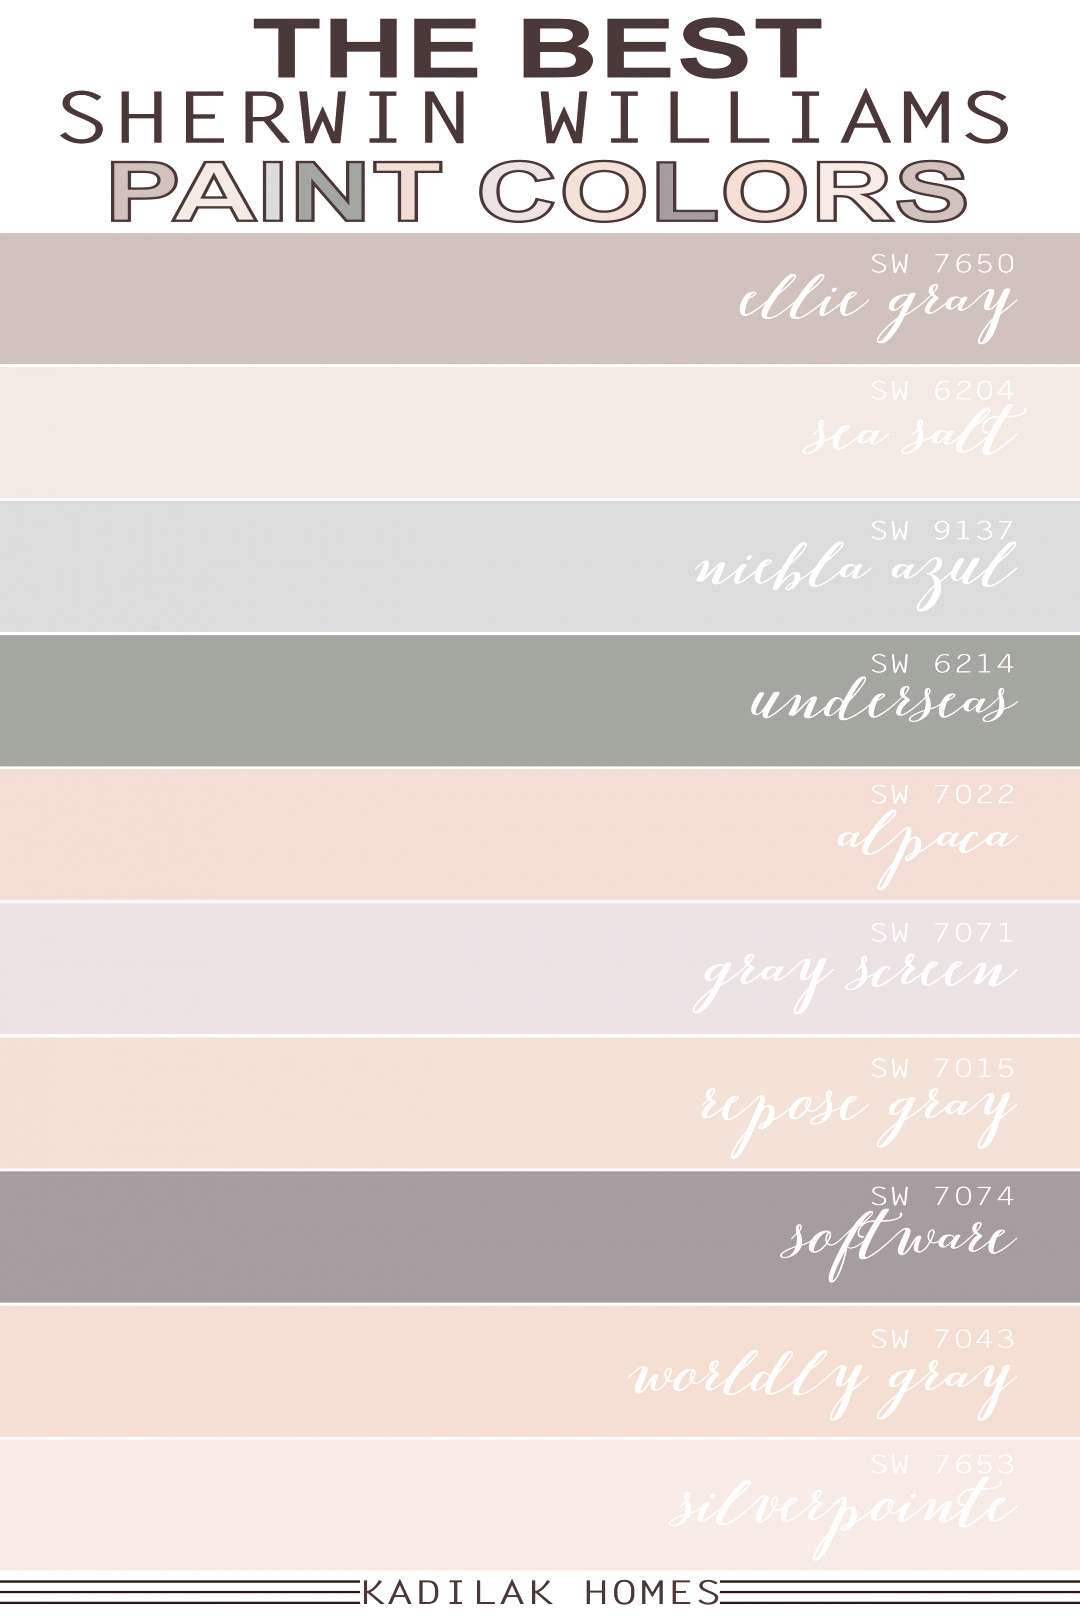 The Best Sherwin Williams Paint Colors We put together our top 10 most popular Sherwin Williams pai